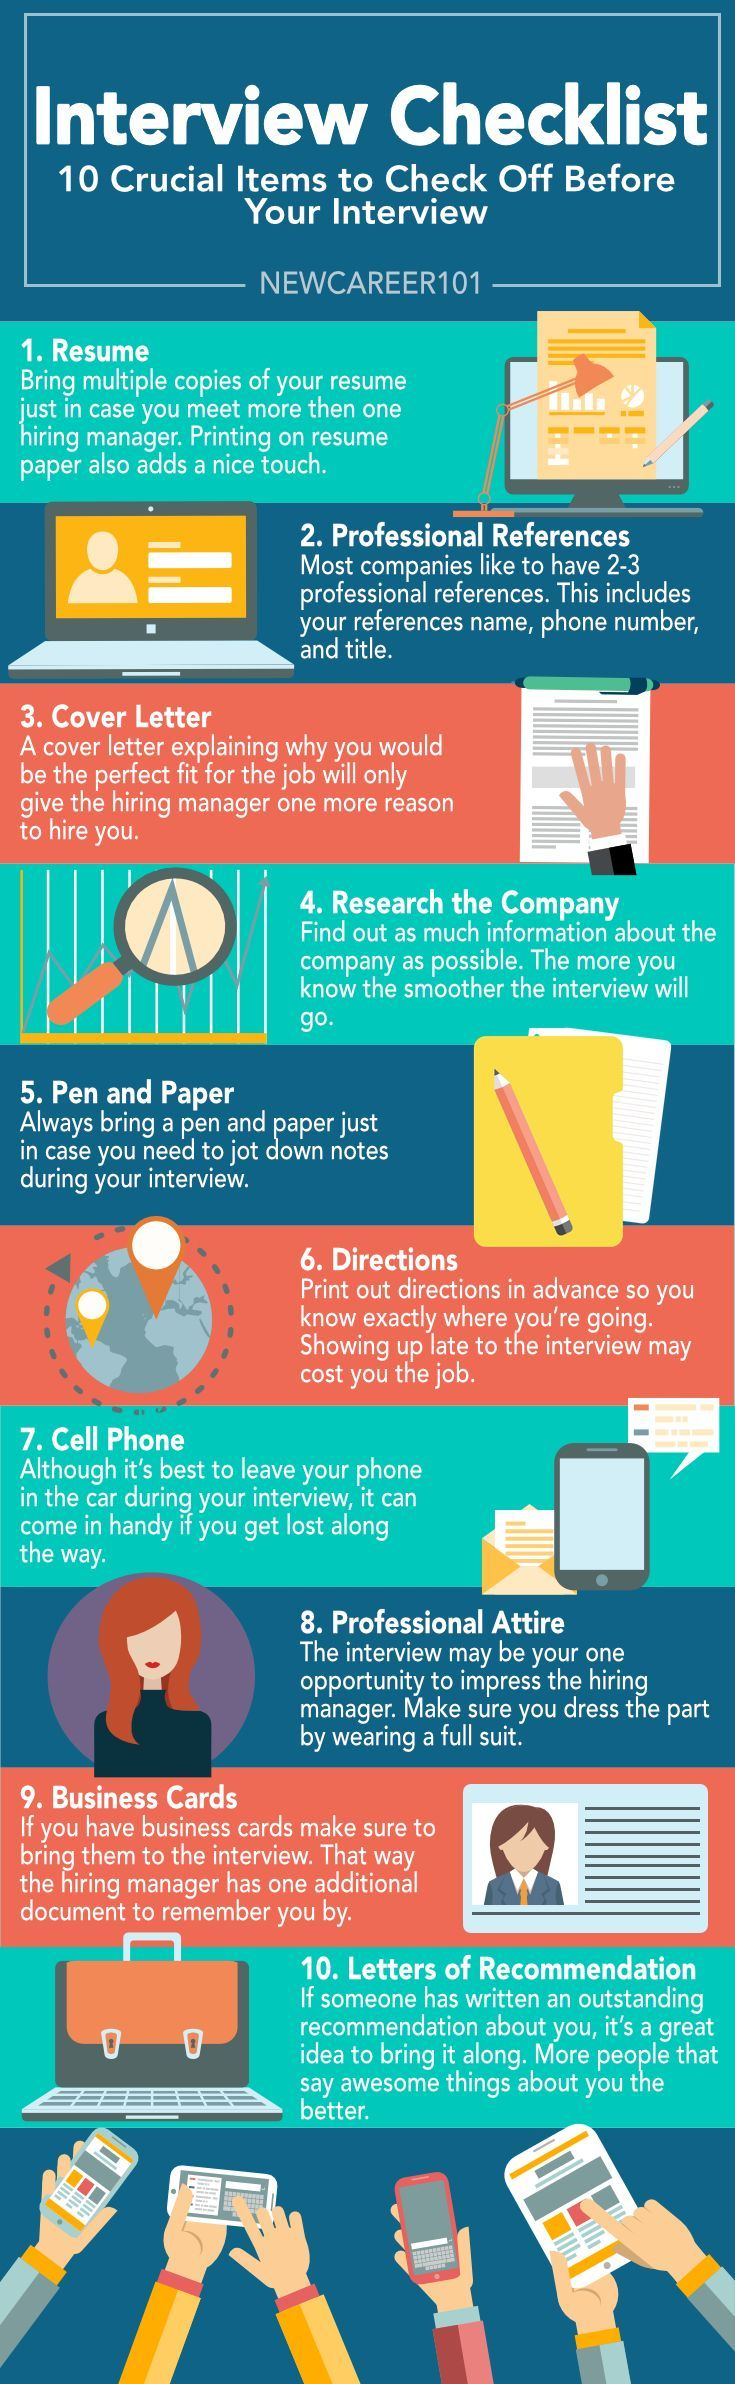 372 best job interview images on pinterest job interviews